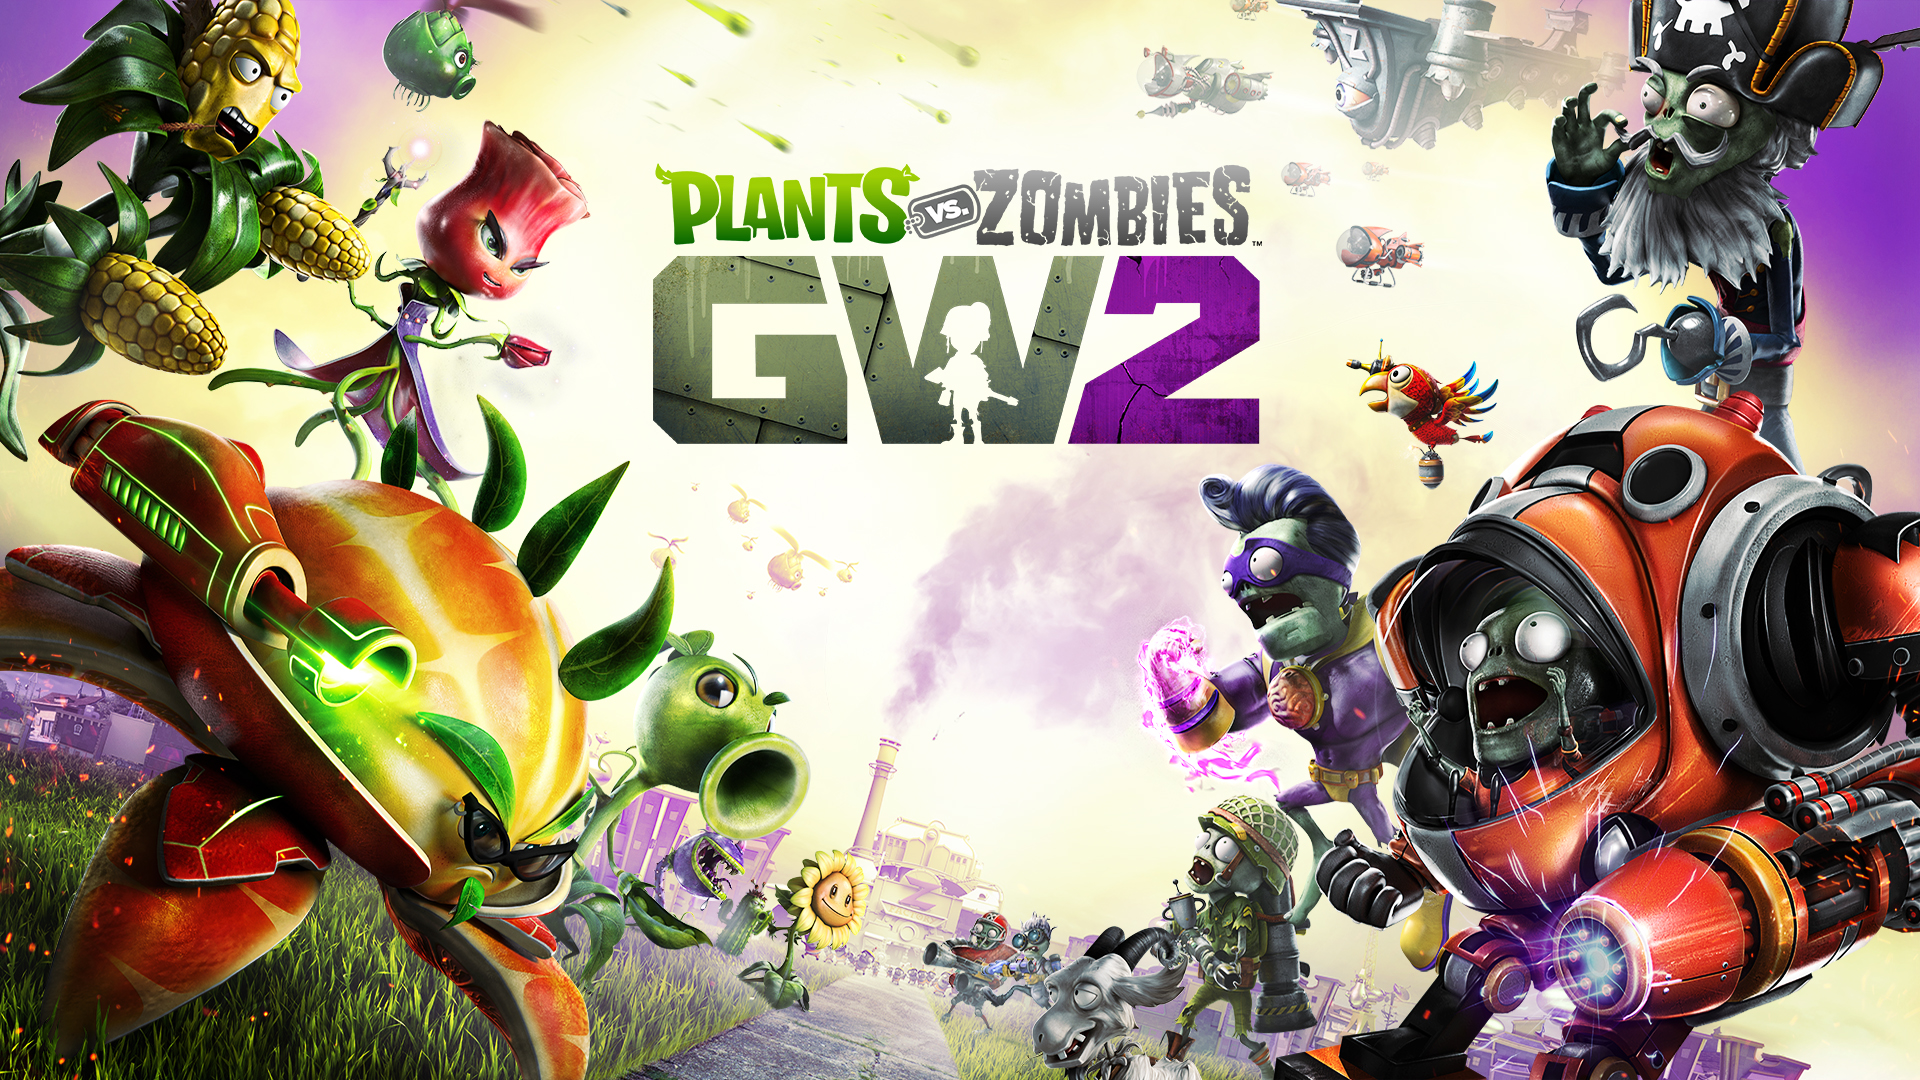 garden of videogames plants vs storyline vgp zombies the warfare vgprofessional review if